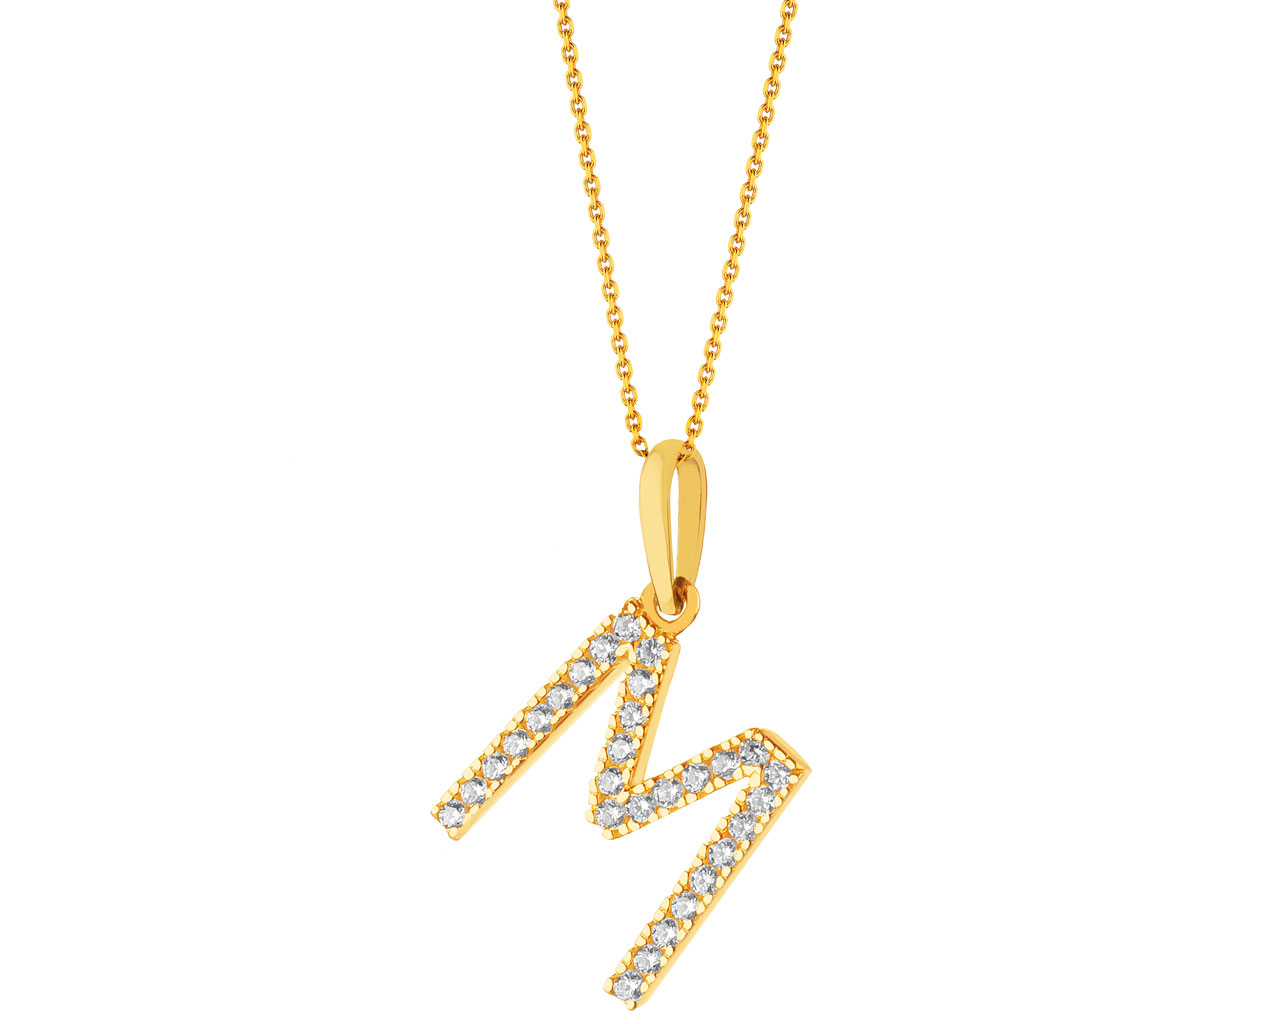 Gold pendant with cubic zirconia - letter M